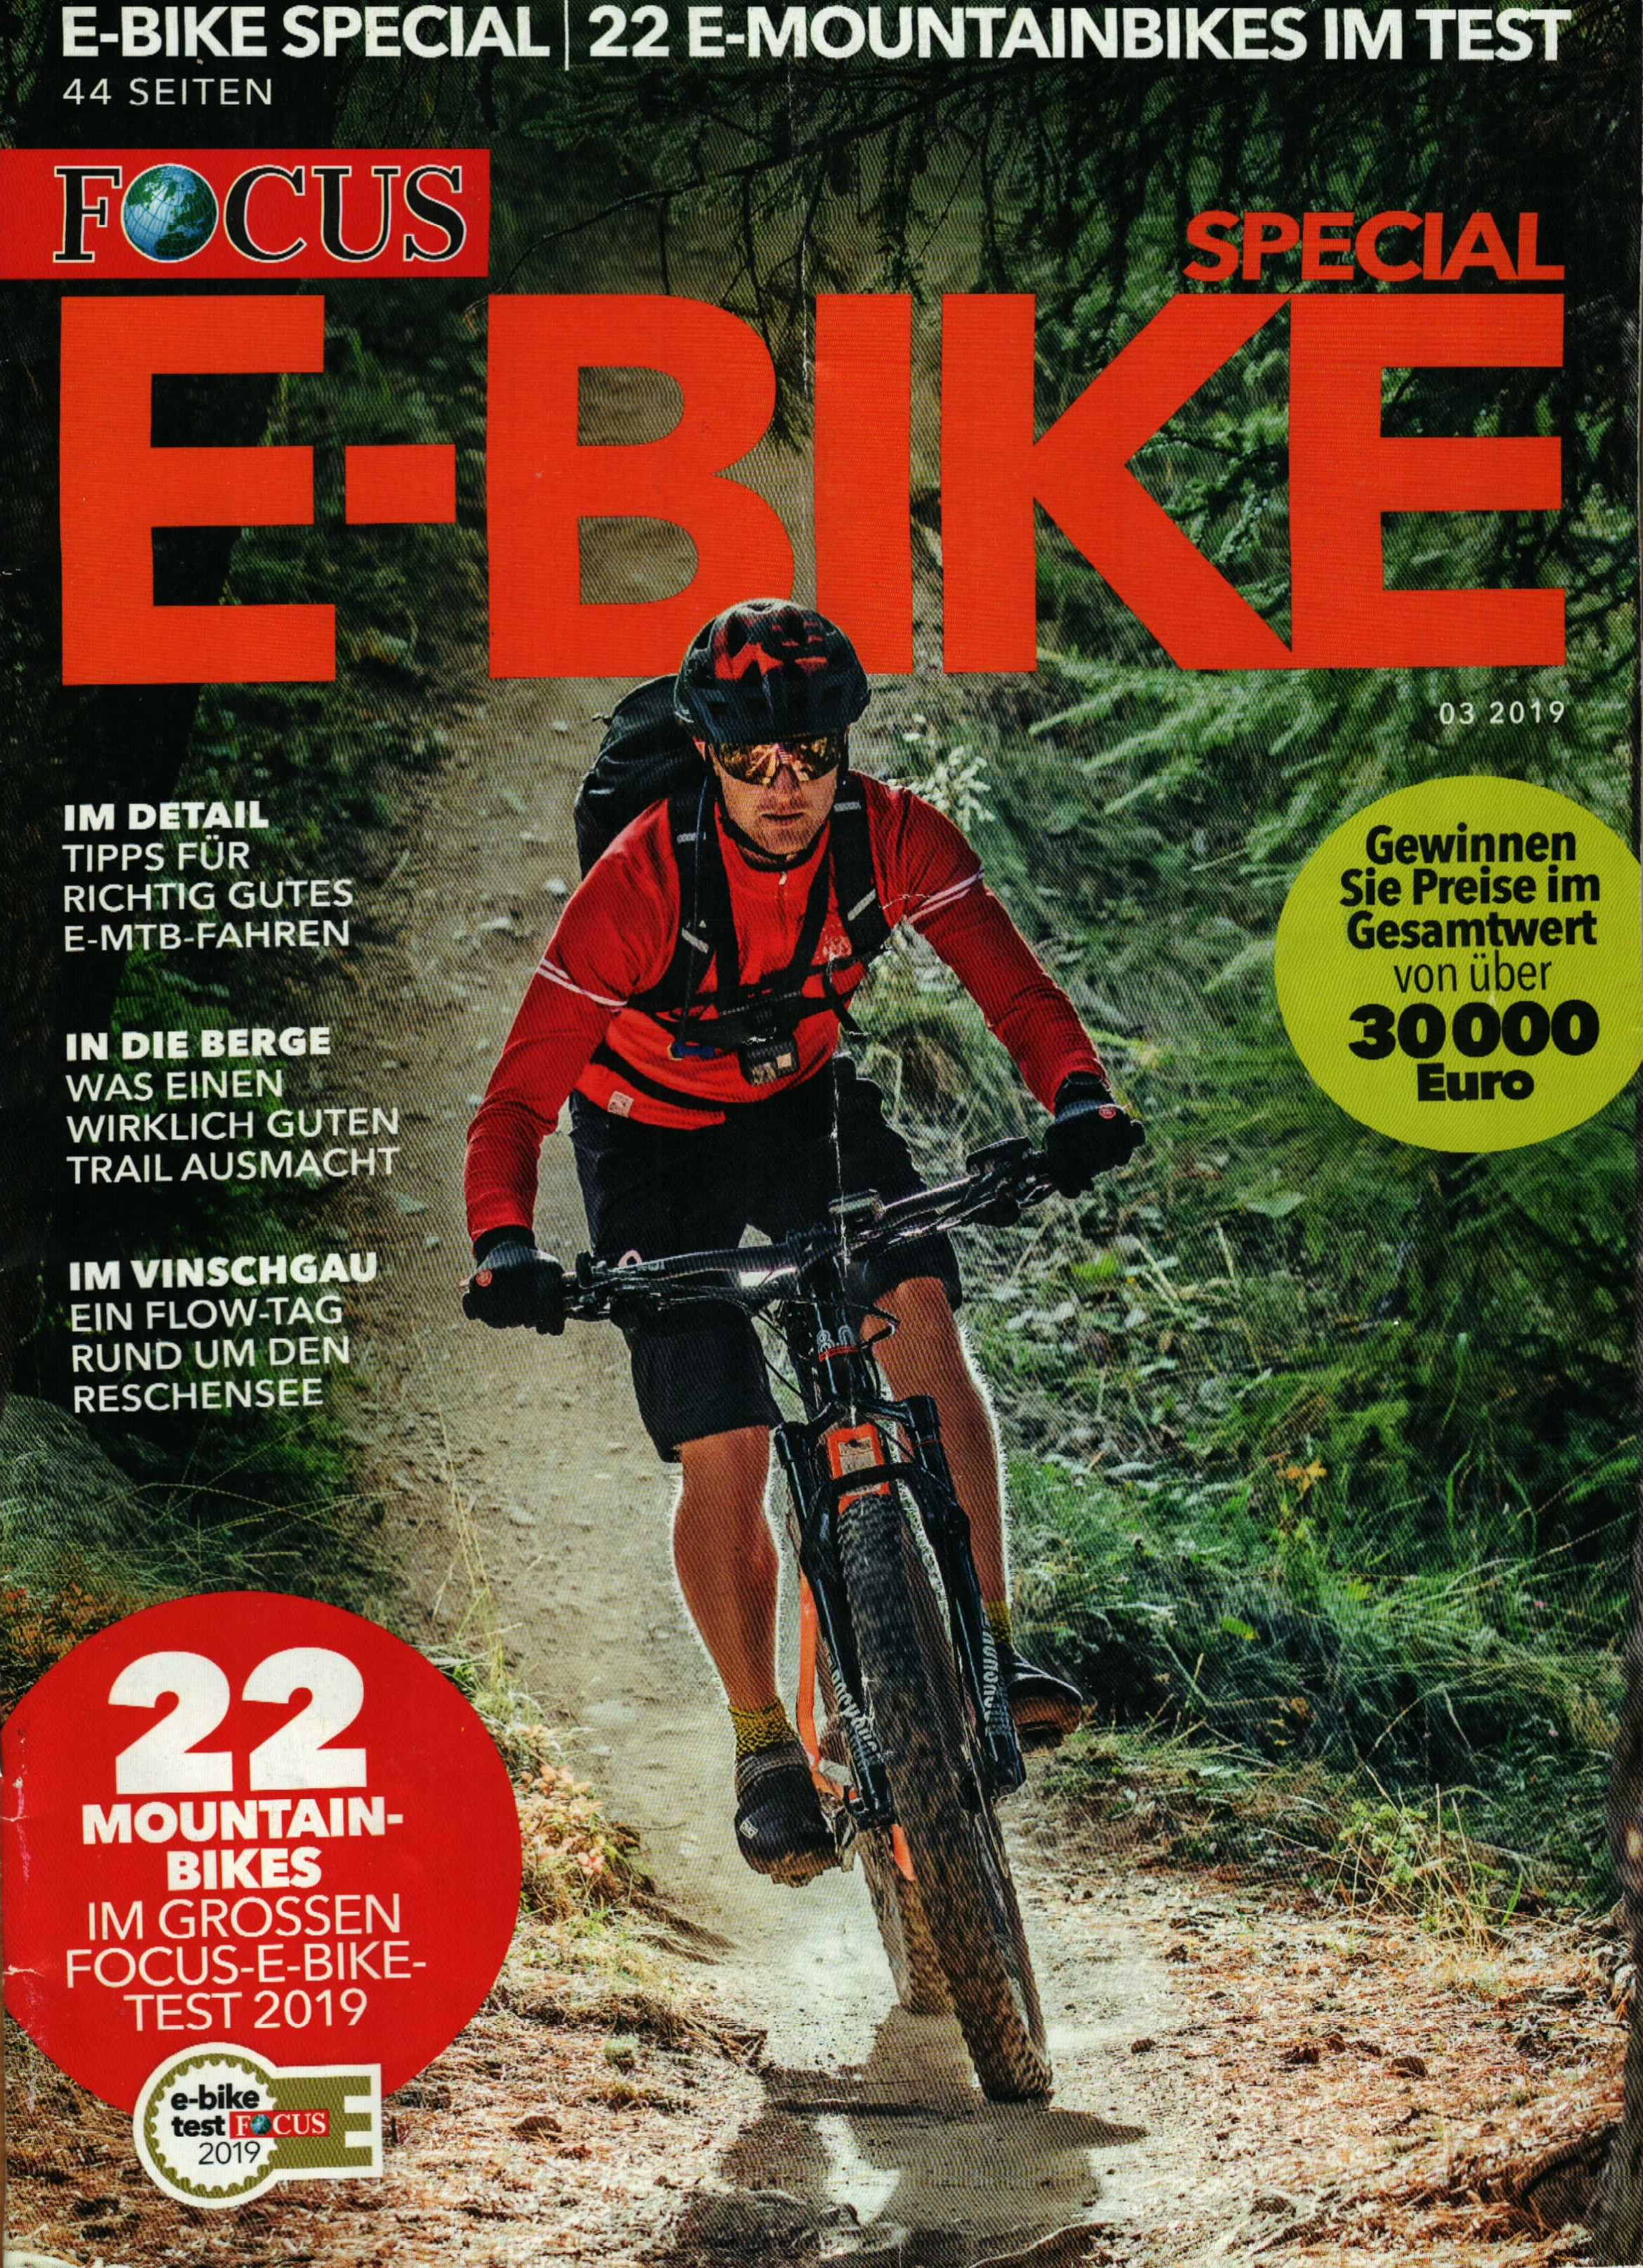 Focus magazine e-bike special